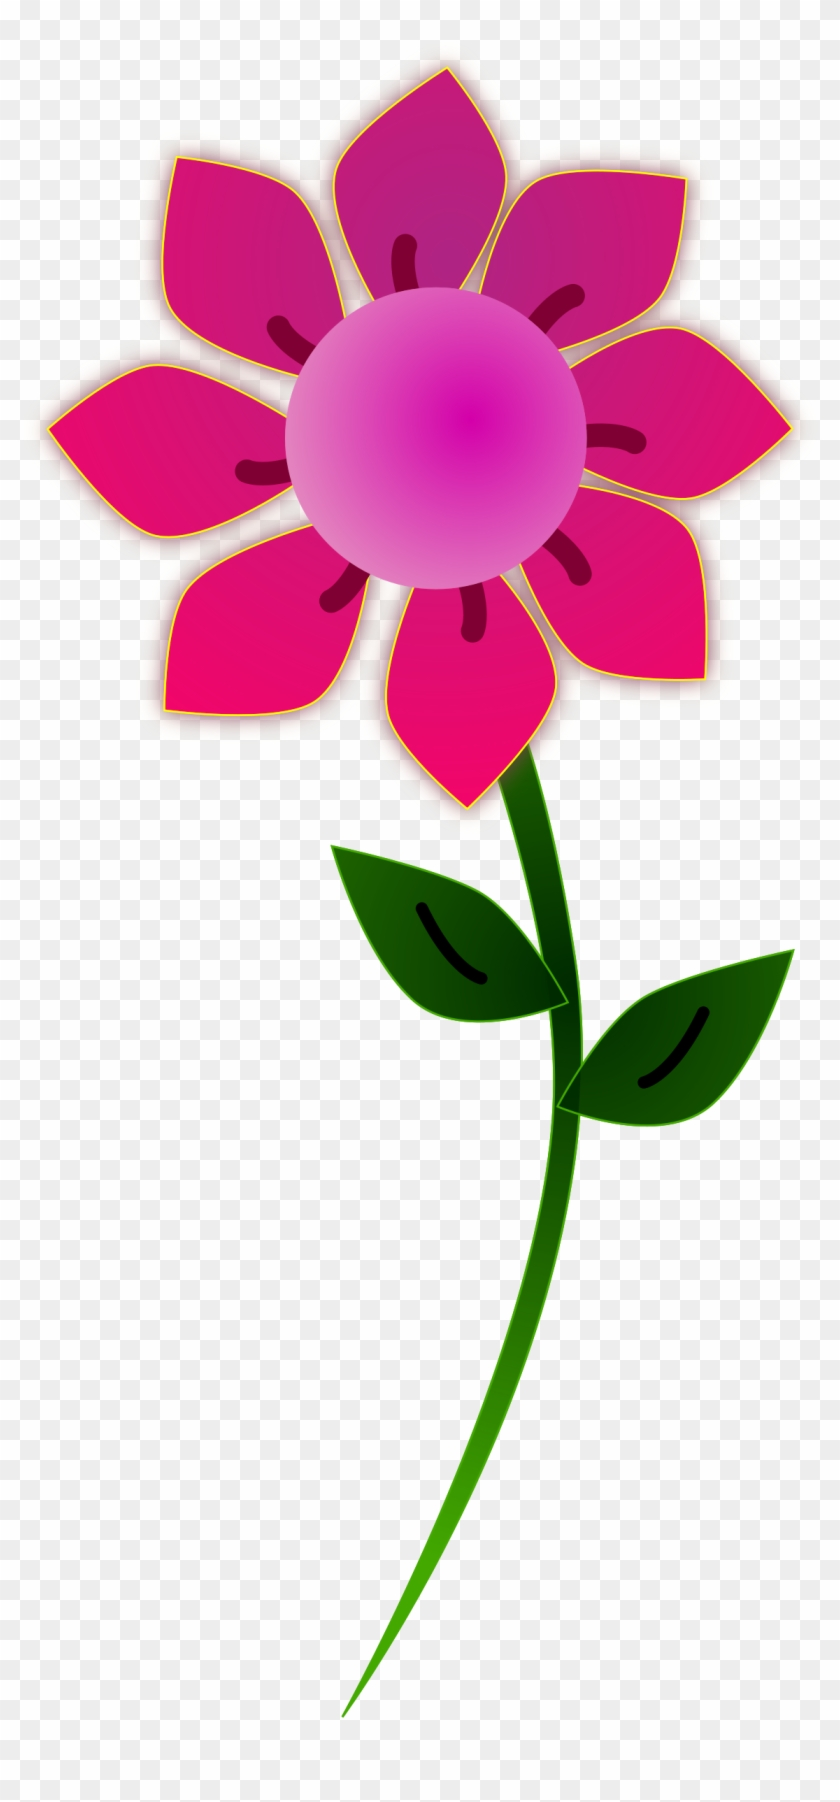 7 Clipart - Flower Clipart Png #3888